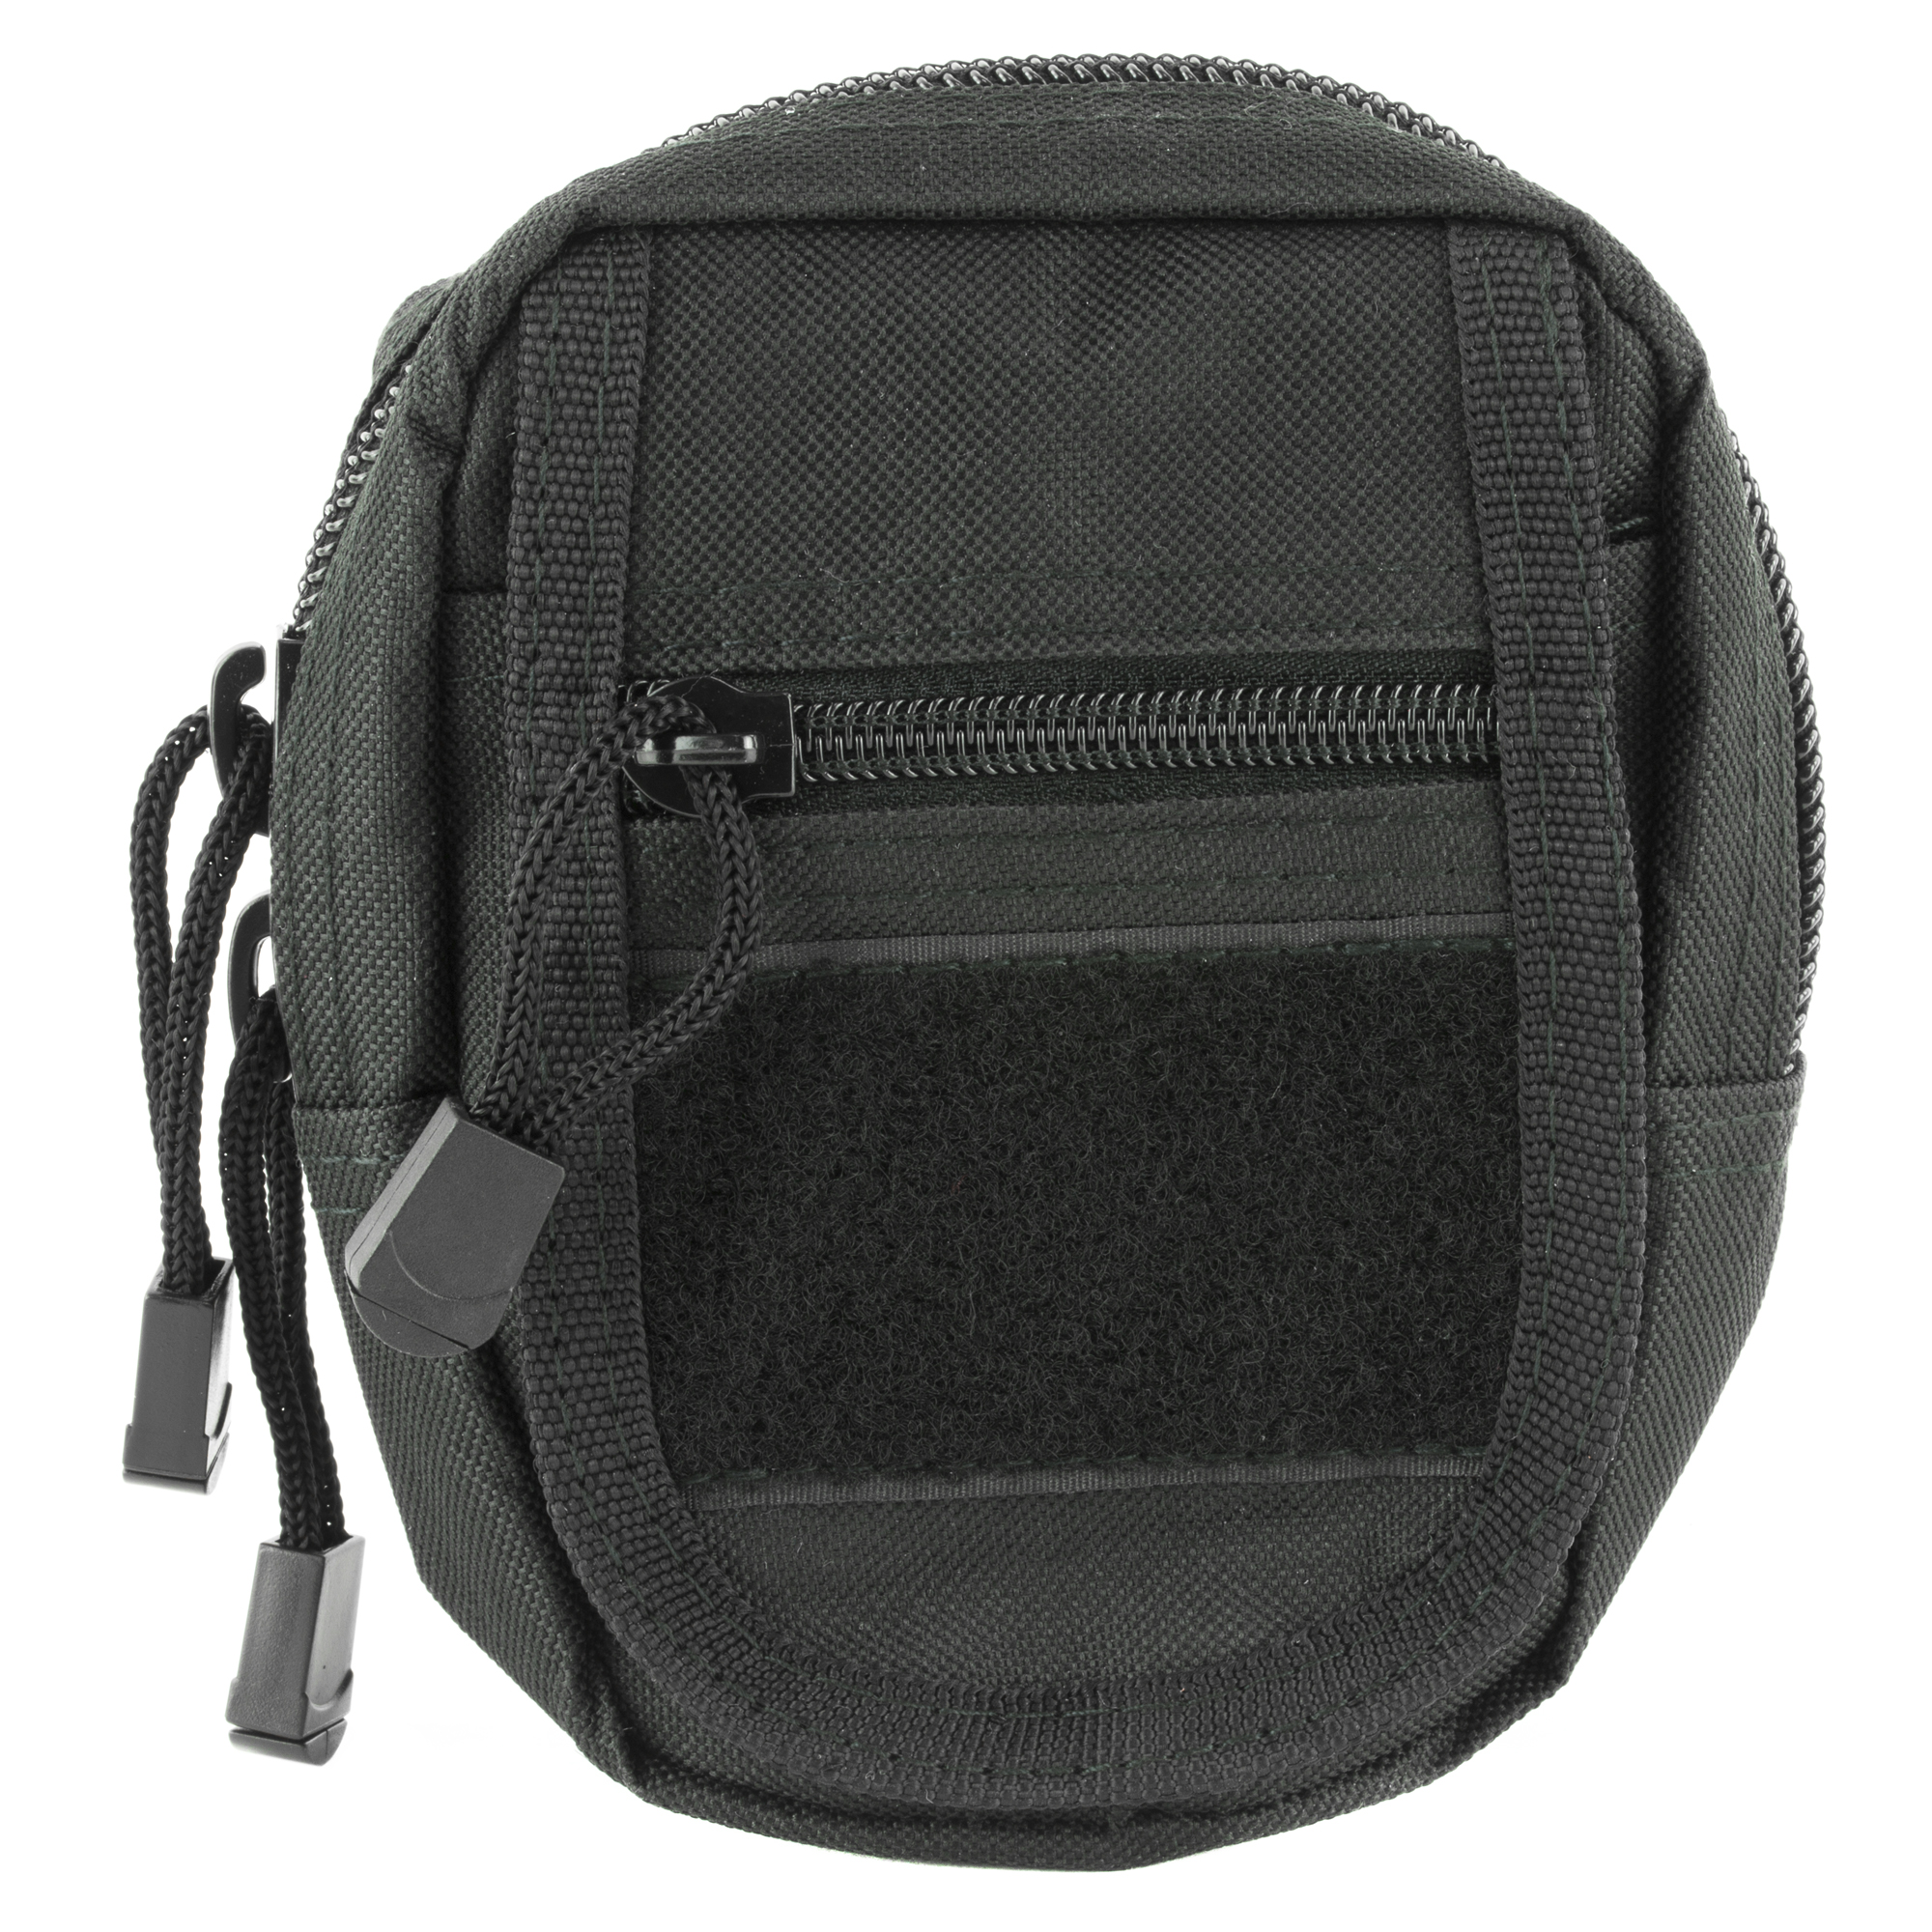 "The NcSTAR Small Utility Pouch is an excellent way to carry your cell phone"" cameras"" medical supplies"" and other small objects. This dump pouch is made of heavy duty PVC/Nylon material with PALS attachment to nearly any MOLLE or PALS system. It features one main zippered compartment"" one front zippered compartment"" and one quick-flap hook and loop compartment. The small size is perfect for storing cell phones"" GPS devices"" cameras"" medical supplies"" flashlights"" and small tools"" or anything else you need to be readily accessible."